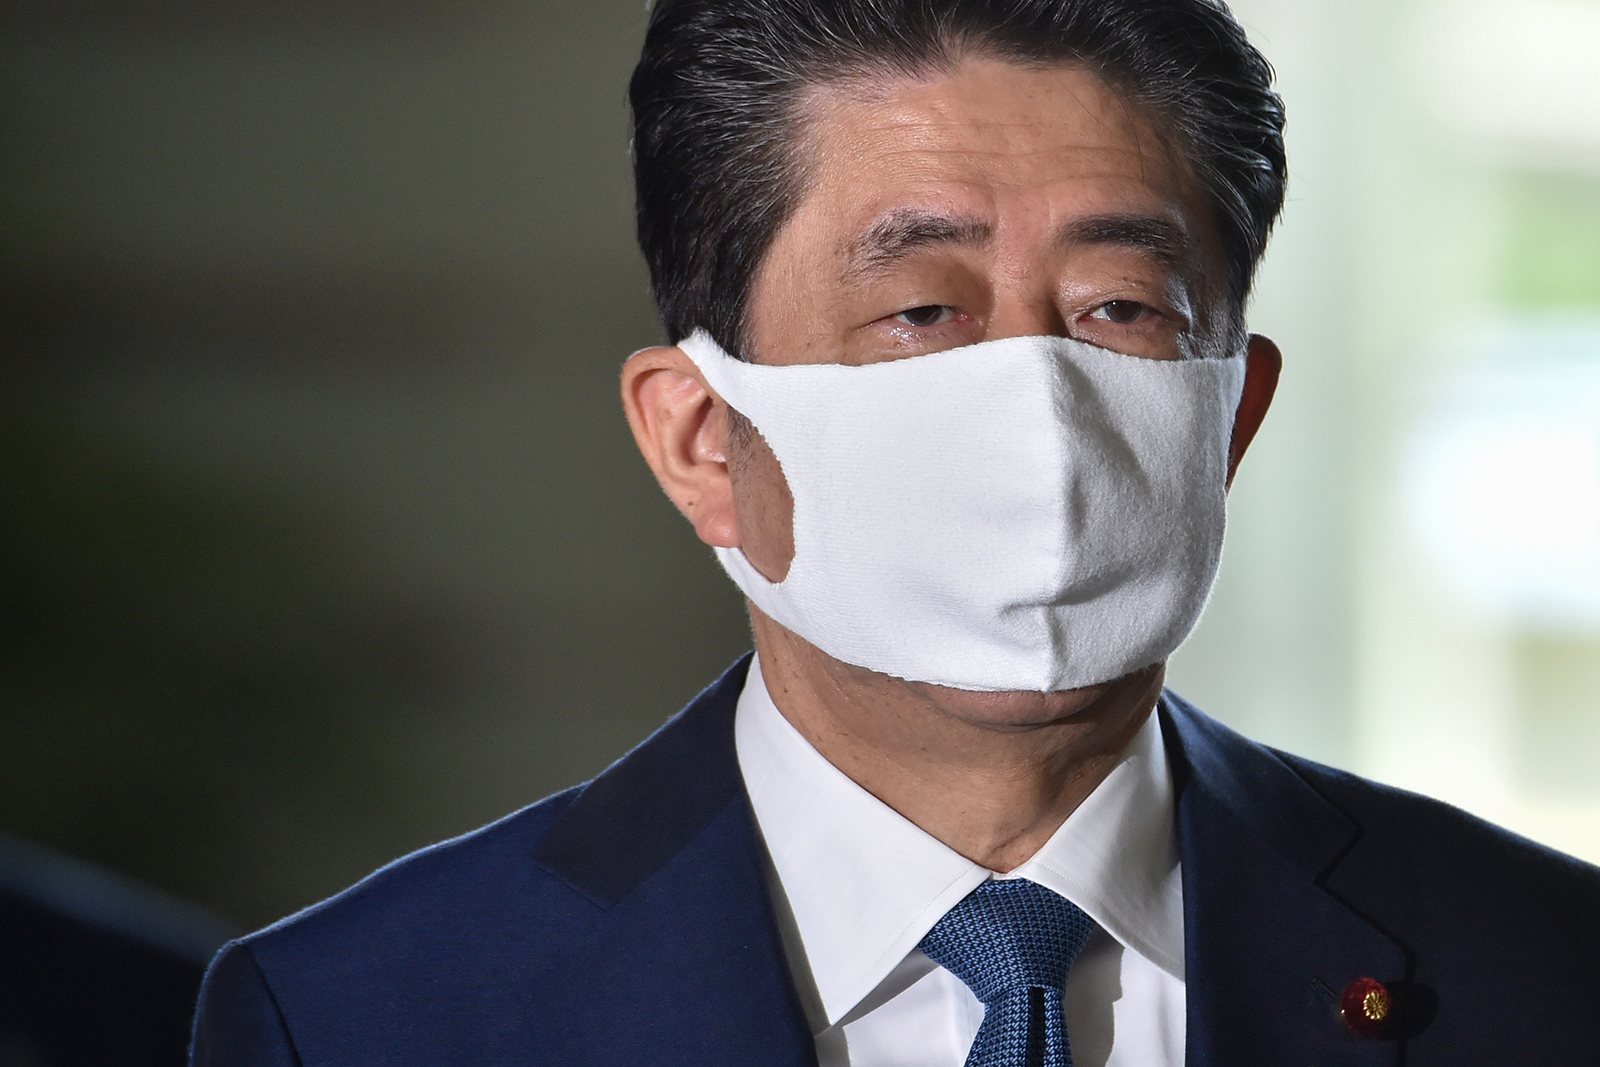 Japan's Prime Minister Shinzo Abe wearing a face mask arrives at the prime minister's office in Tokyo, on August 28.